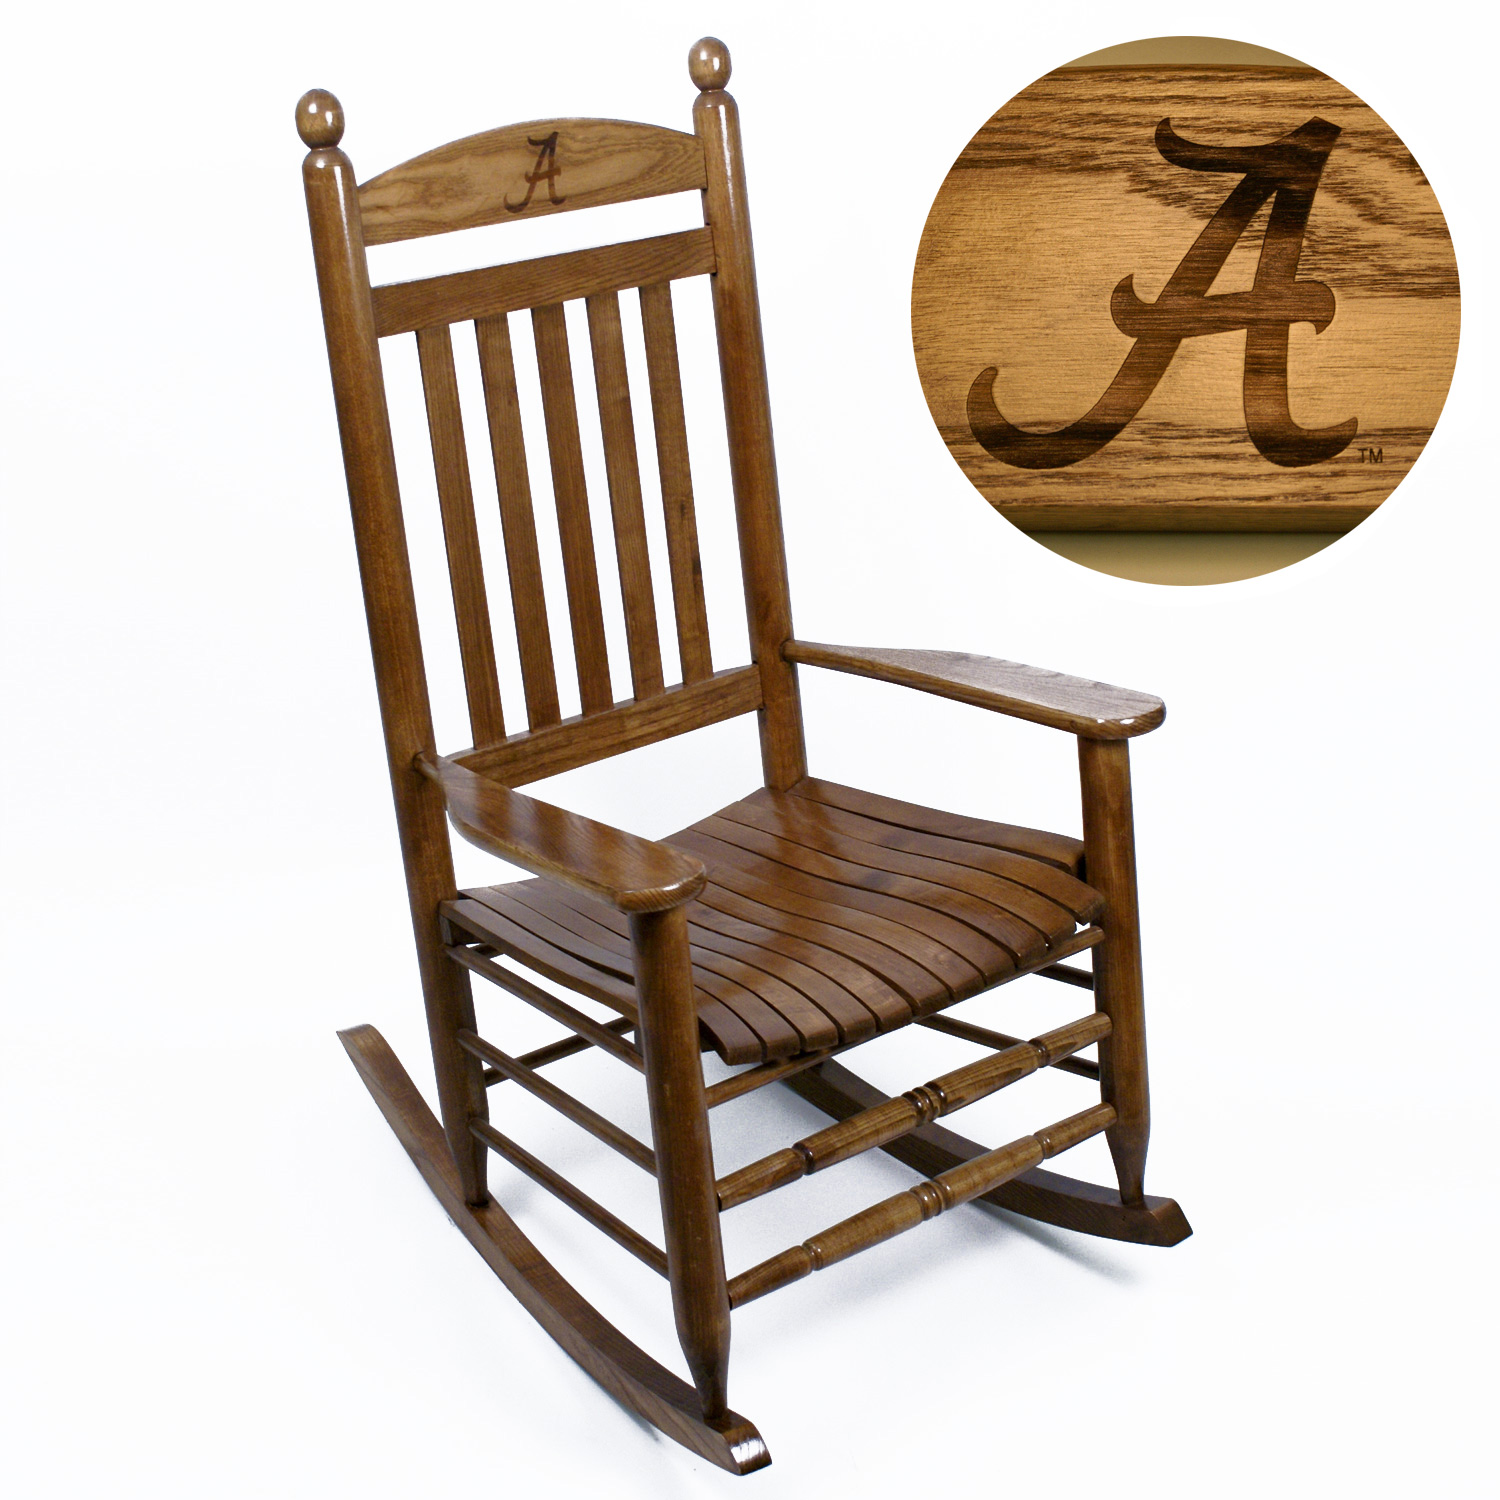 Alabama Crimson Tide Rocking Chair - Maple Finish